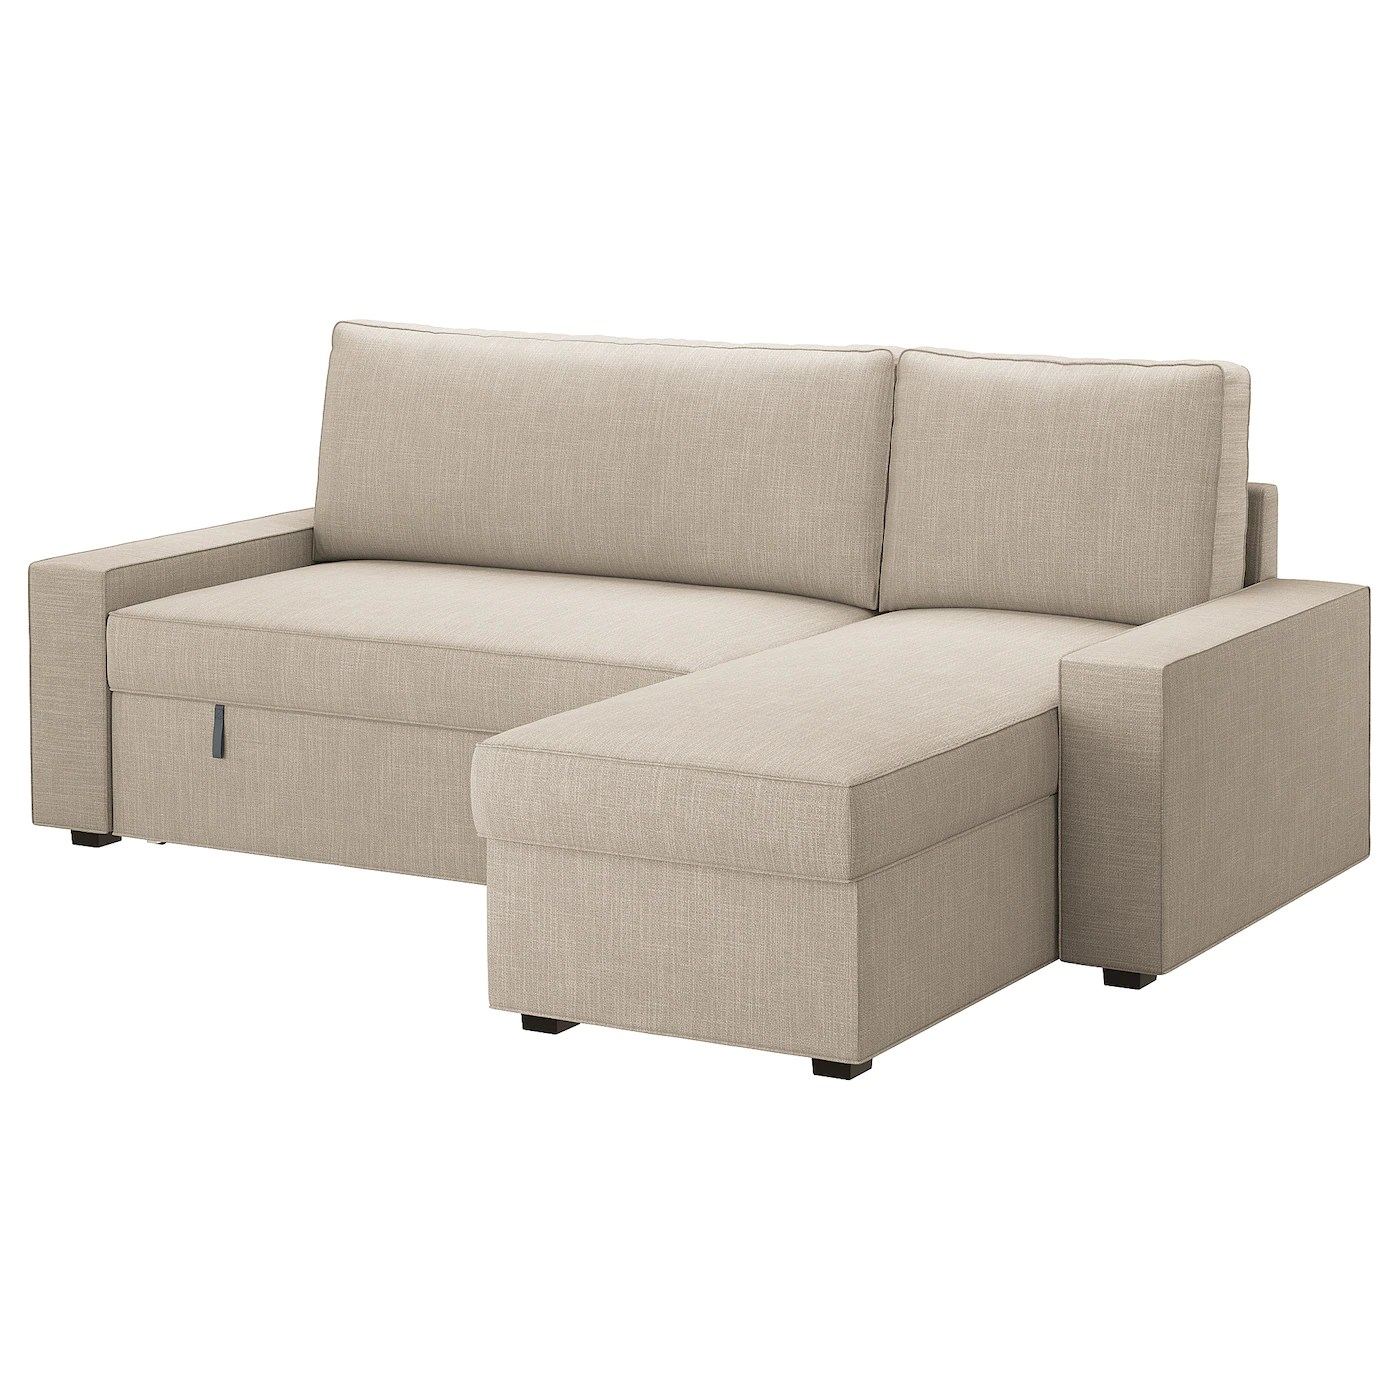 Ikea Vilasund Sofa Bed Vilasund Sofa Bed With Chaise Longue Hillared Beige Ikea